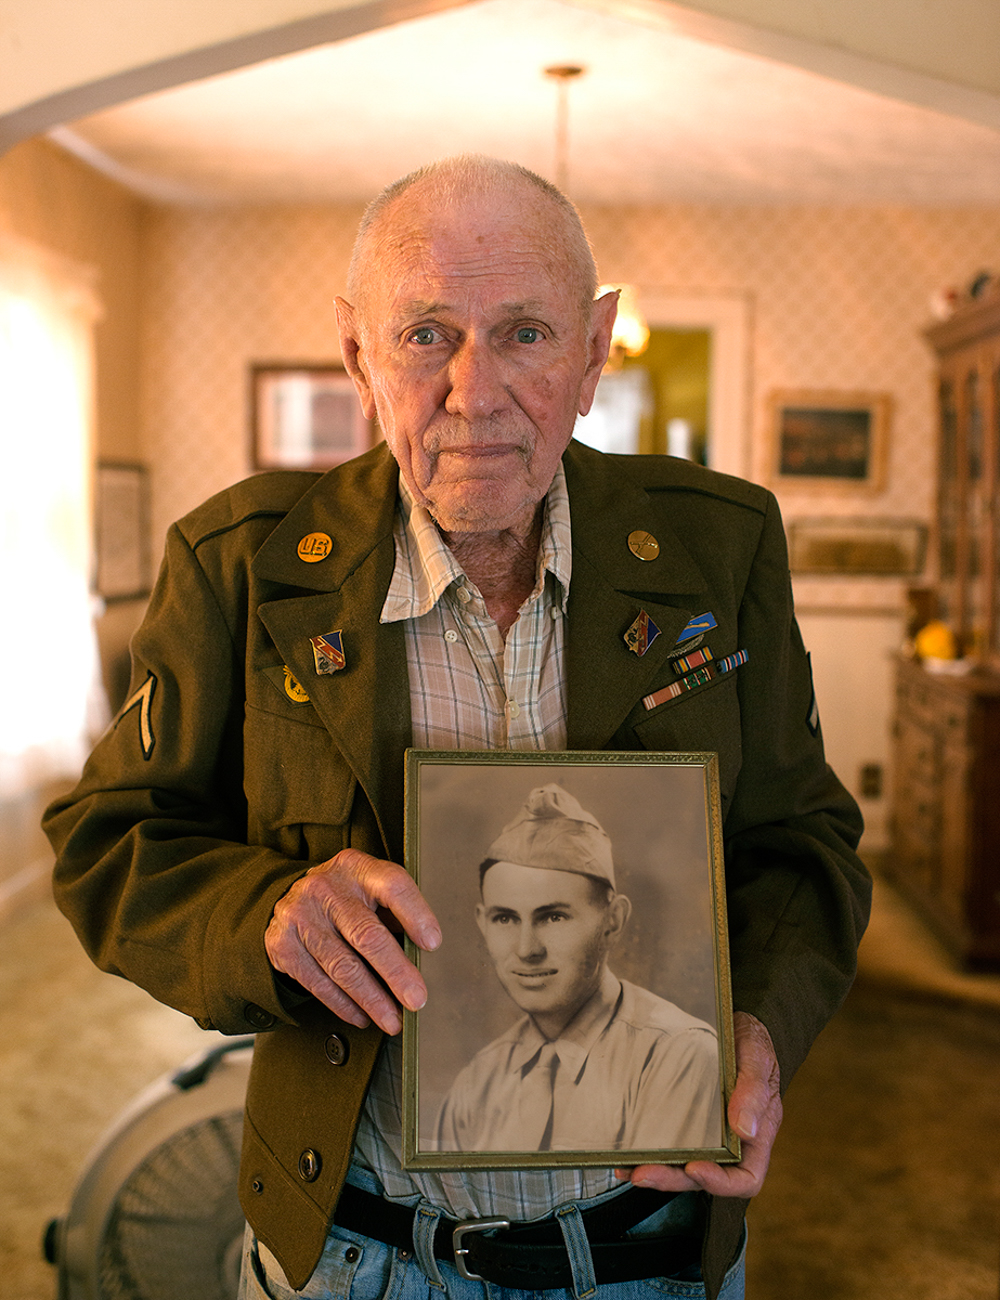 CHESTER BISHOP / He enlisted after hearing about a neighbor's brother being killed in North Africa, and he went on to see 209 days of combat over several European campaigns. Read more of his story at facebook.com/theygaveitall. / Image: Patrick McCue // Published: 1.29.17